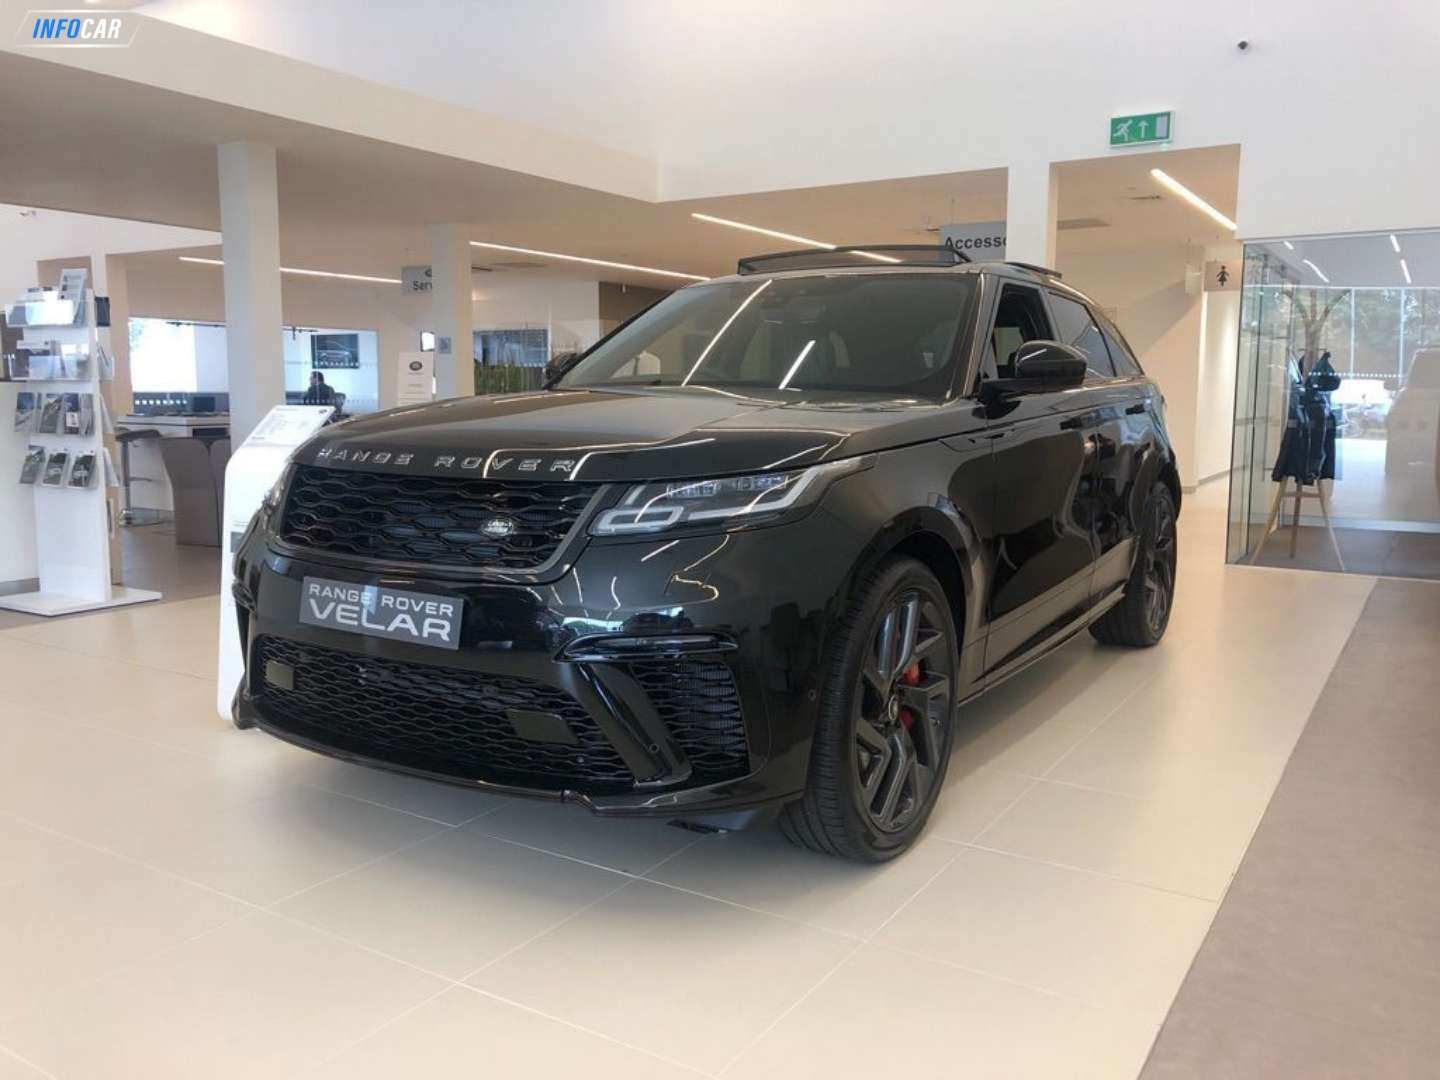 2020 Land Rover Range Rover Velar Sv Autobiography Dynamic - INFOCAR - Toronto's Most Comprehensive New and Used Auto Trading Platform